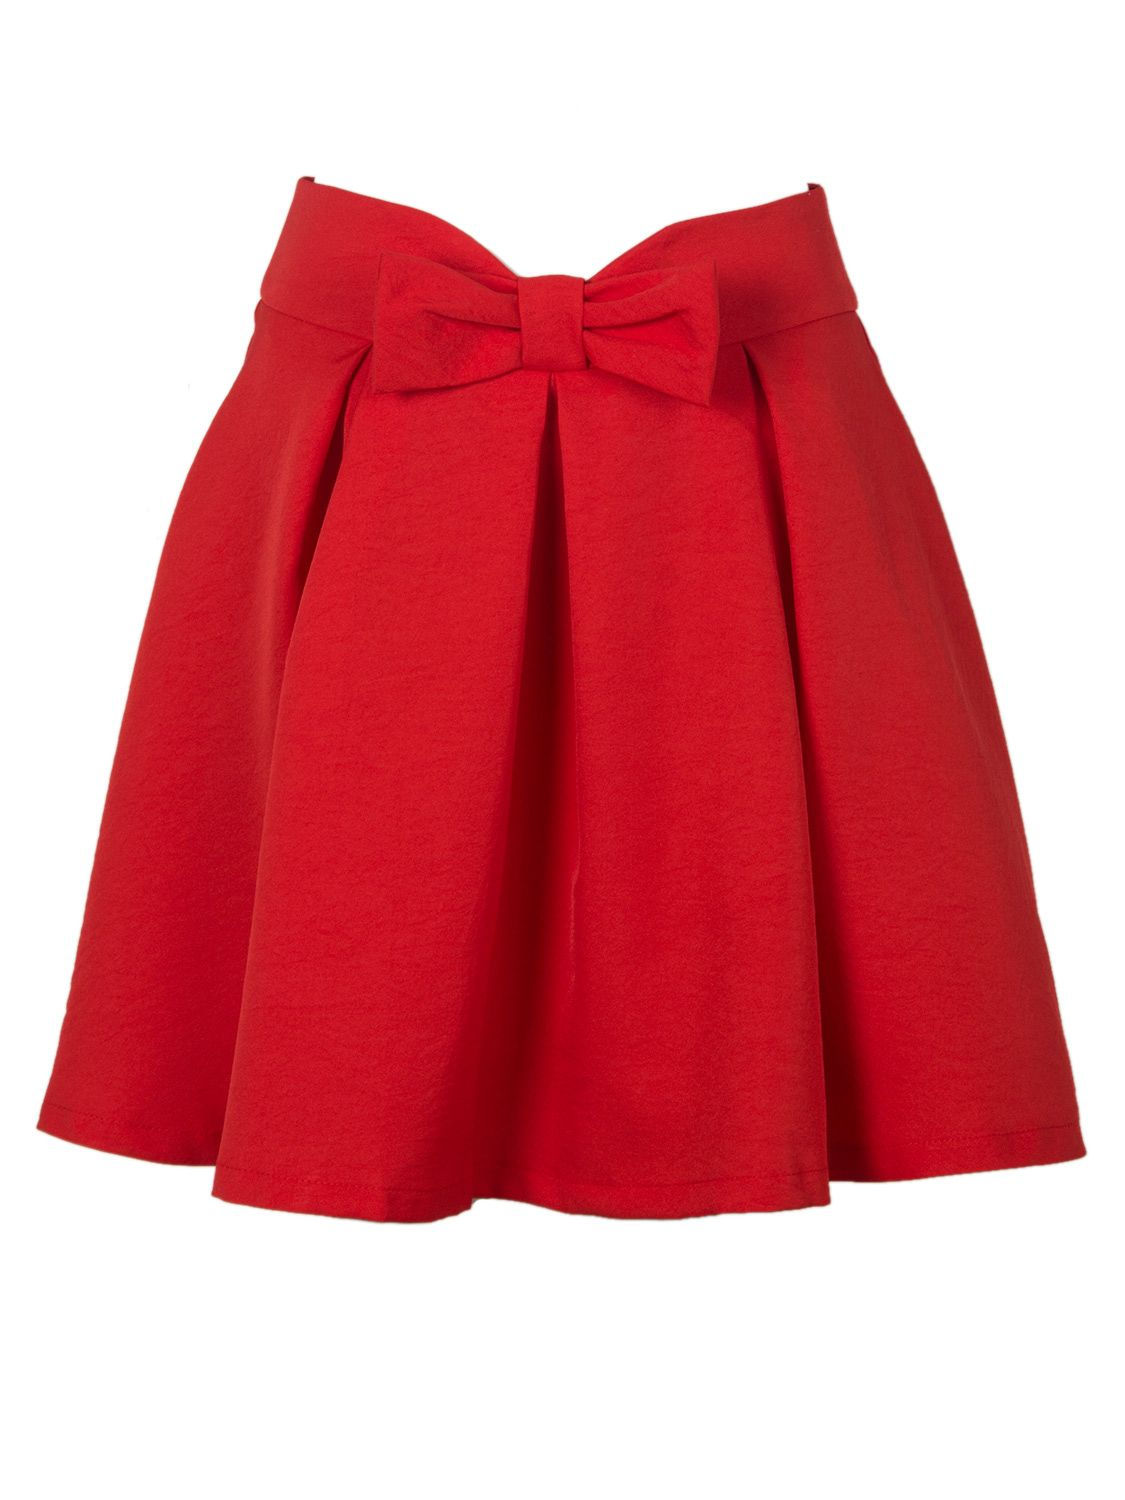 2910ca841c cute red bow skirt for the holidays | Clothing Envy | Red pleated ...